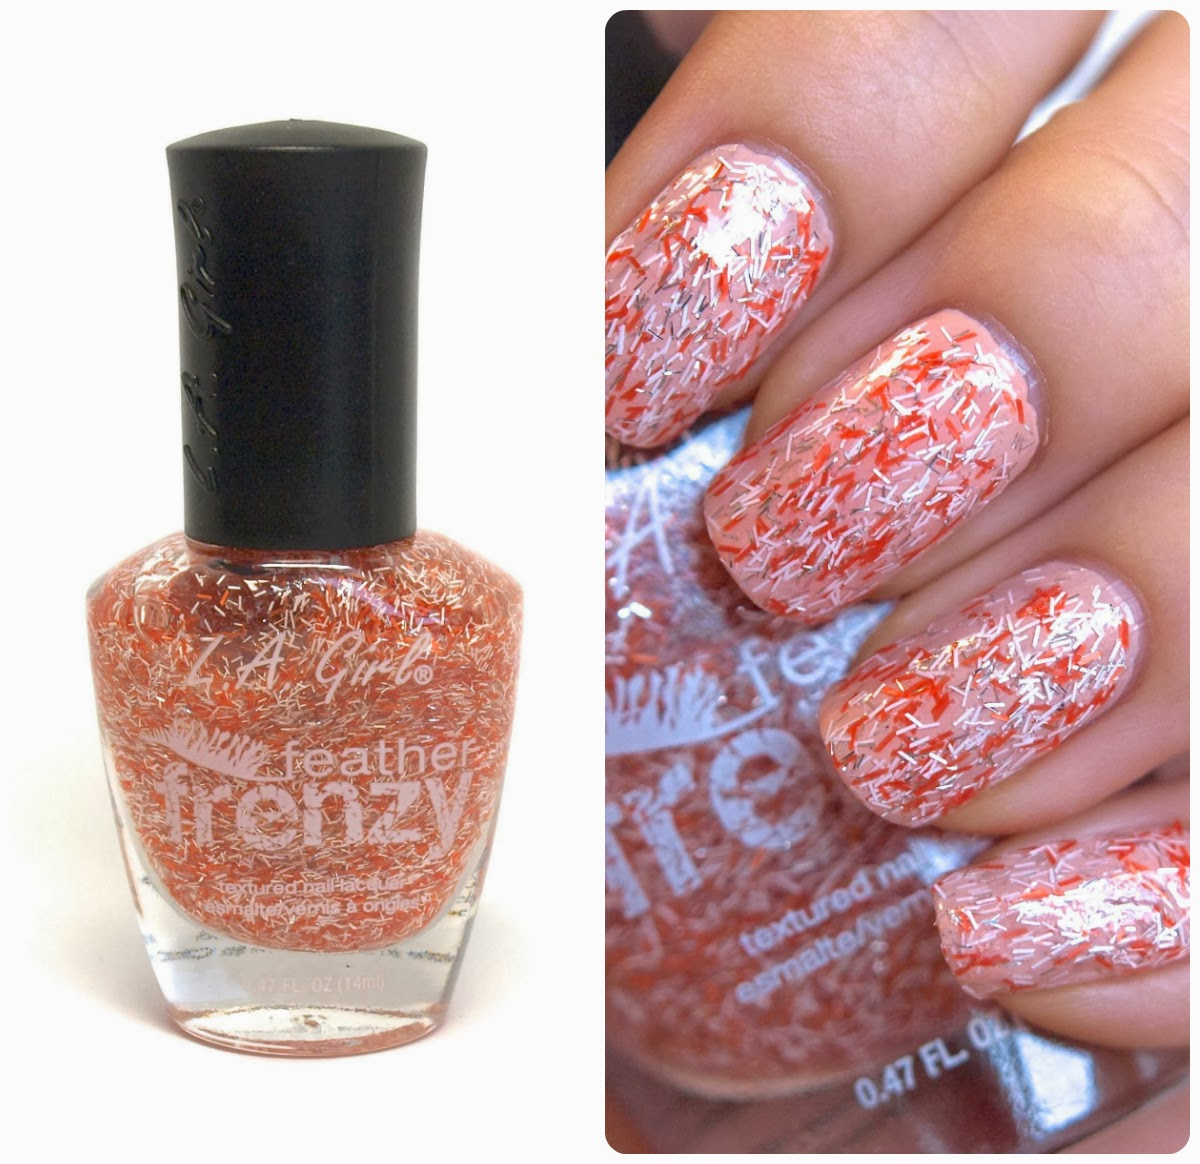 First Up Is An Orange White And Silver Bar Glitter Nail Polish Called Oriole 5 00 Named After The Charming Little Birds Base Transpa